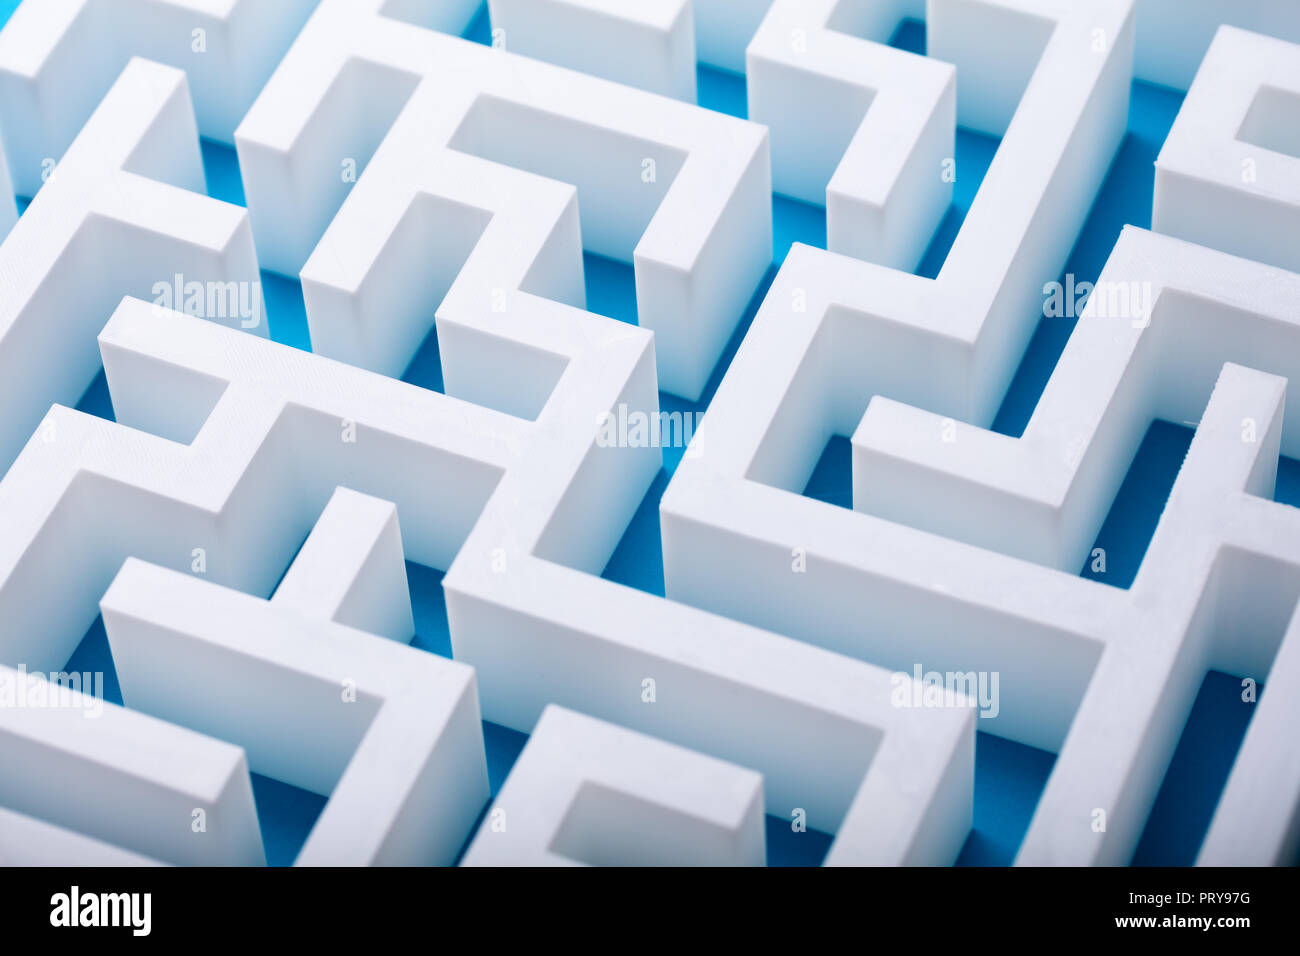 Elevated View Of Abstract Empty White Maze - Stock Image